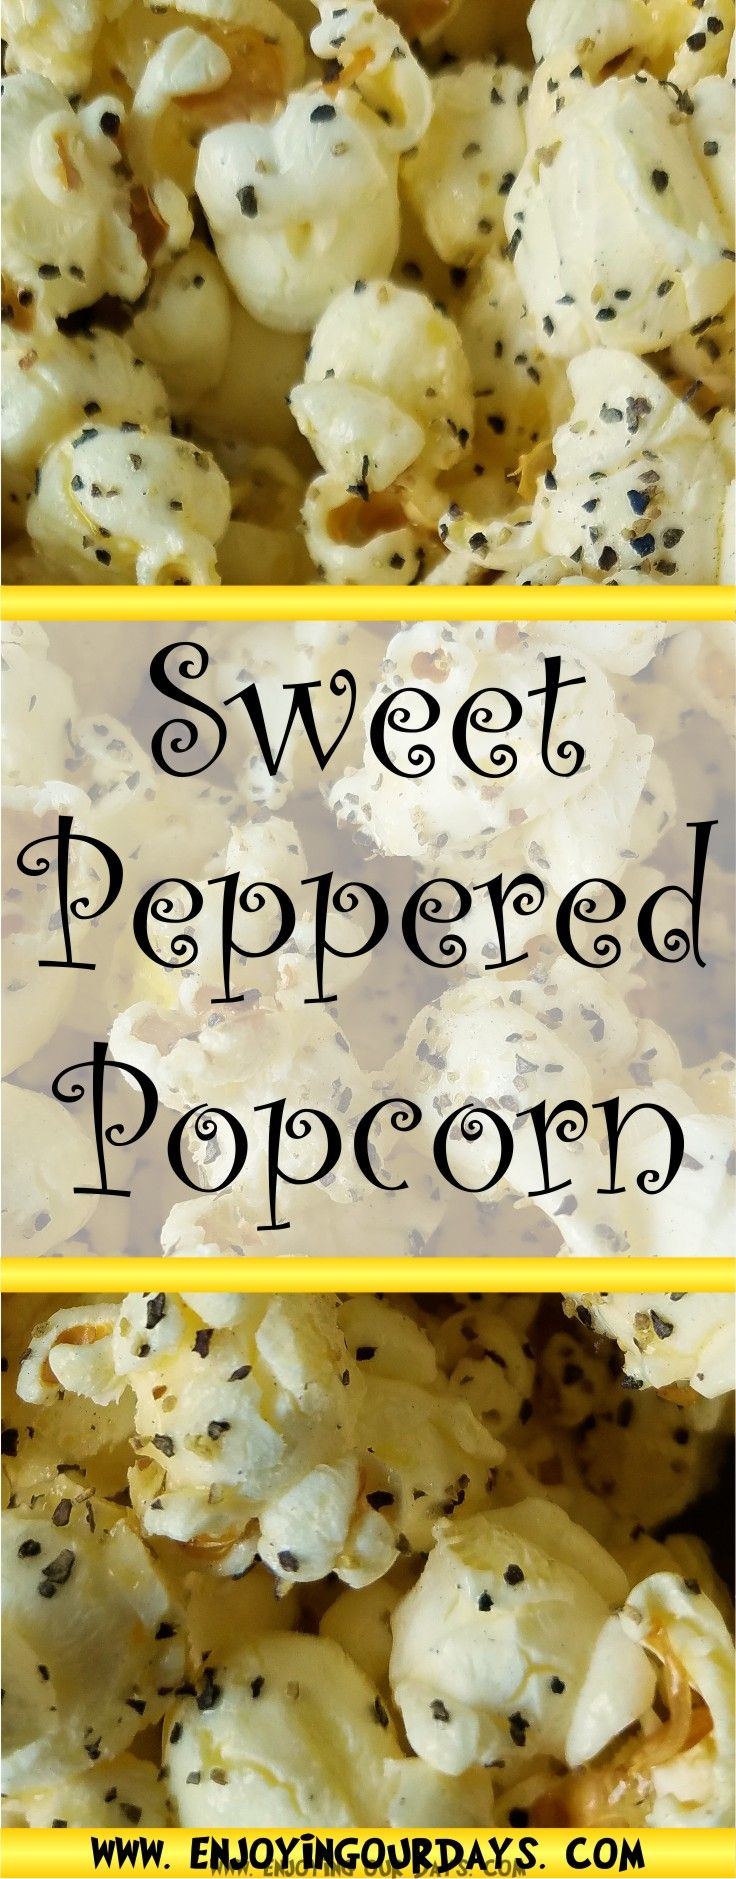 Sweet peppered popcorn for family night! It's a frugal recipe to add to your family fun! via @jenniferspears9